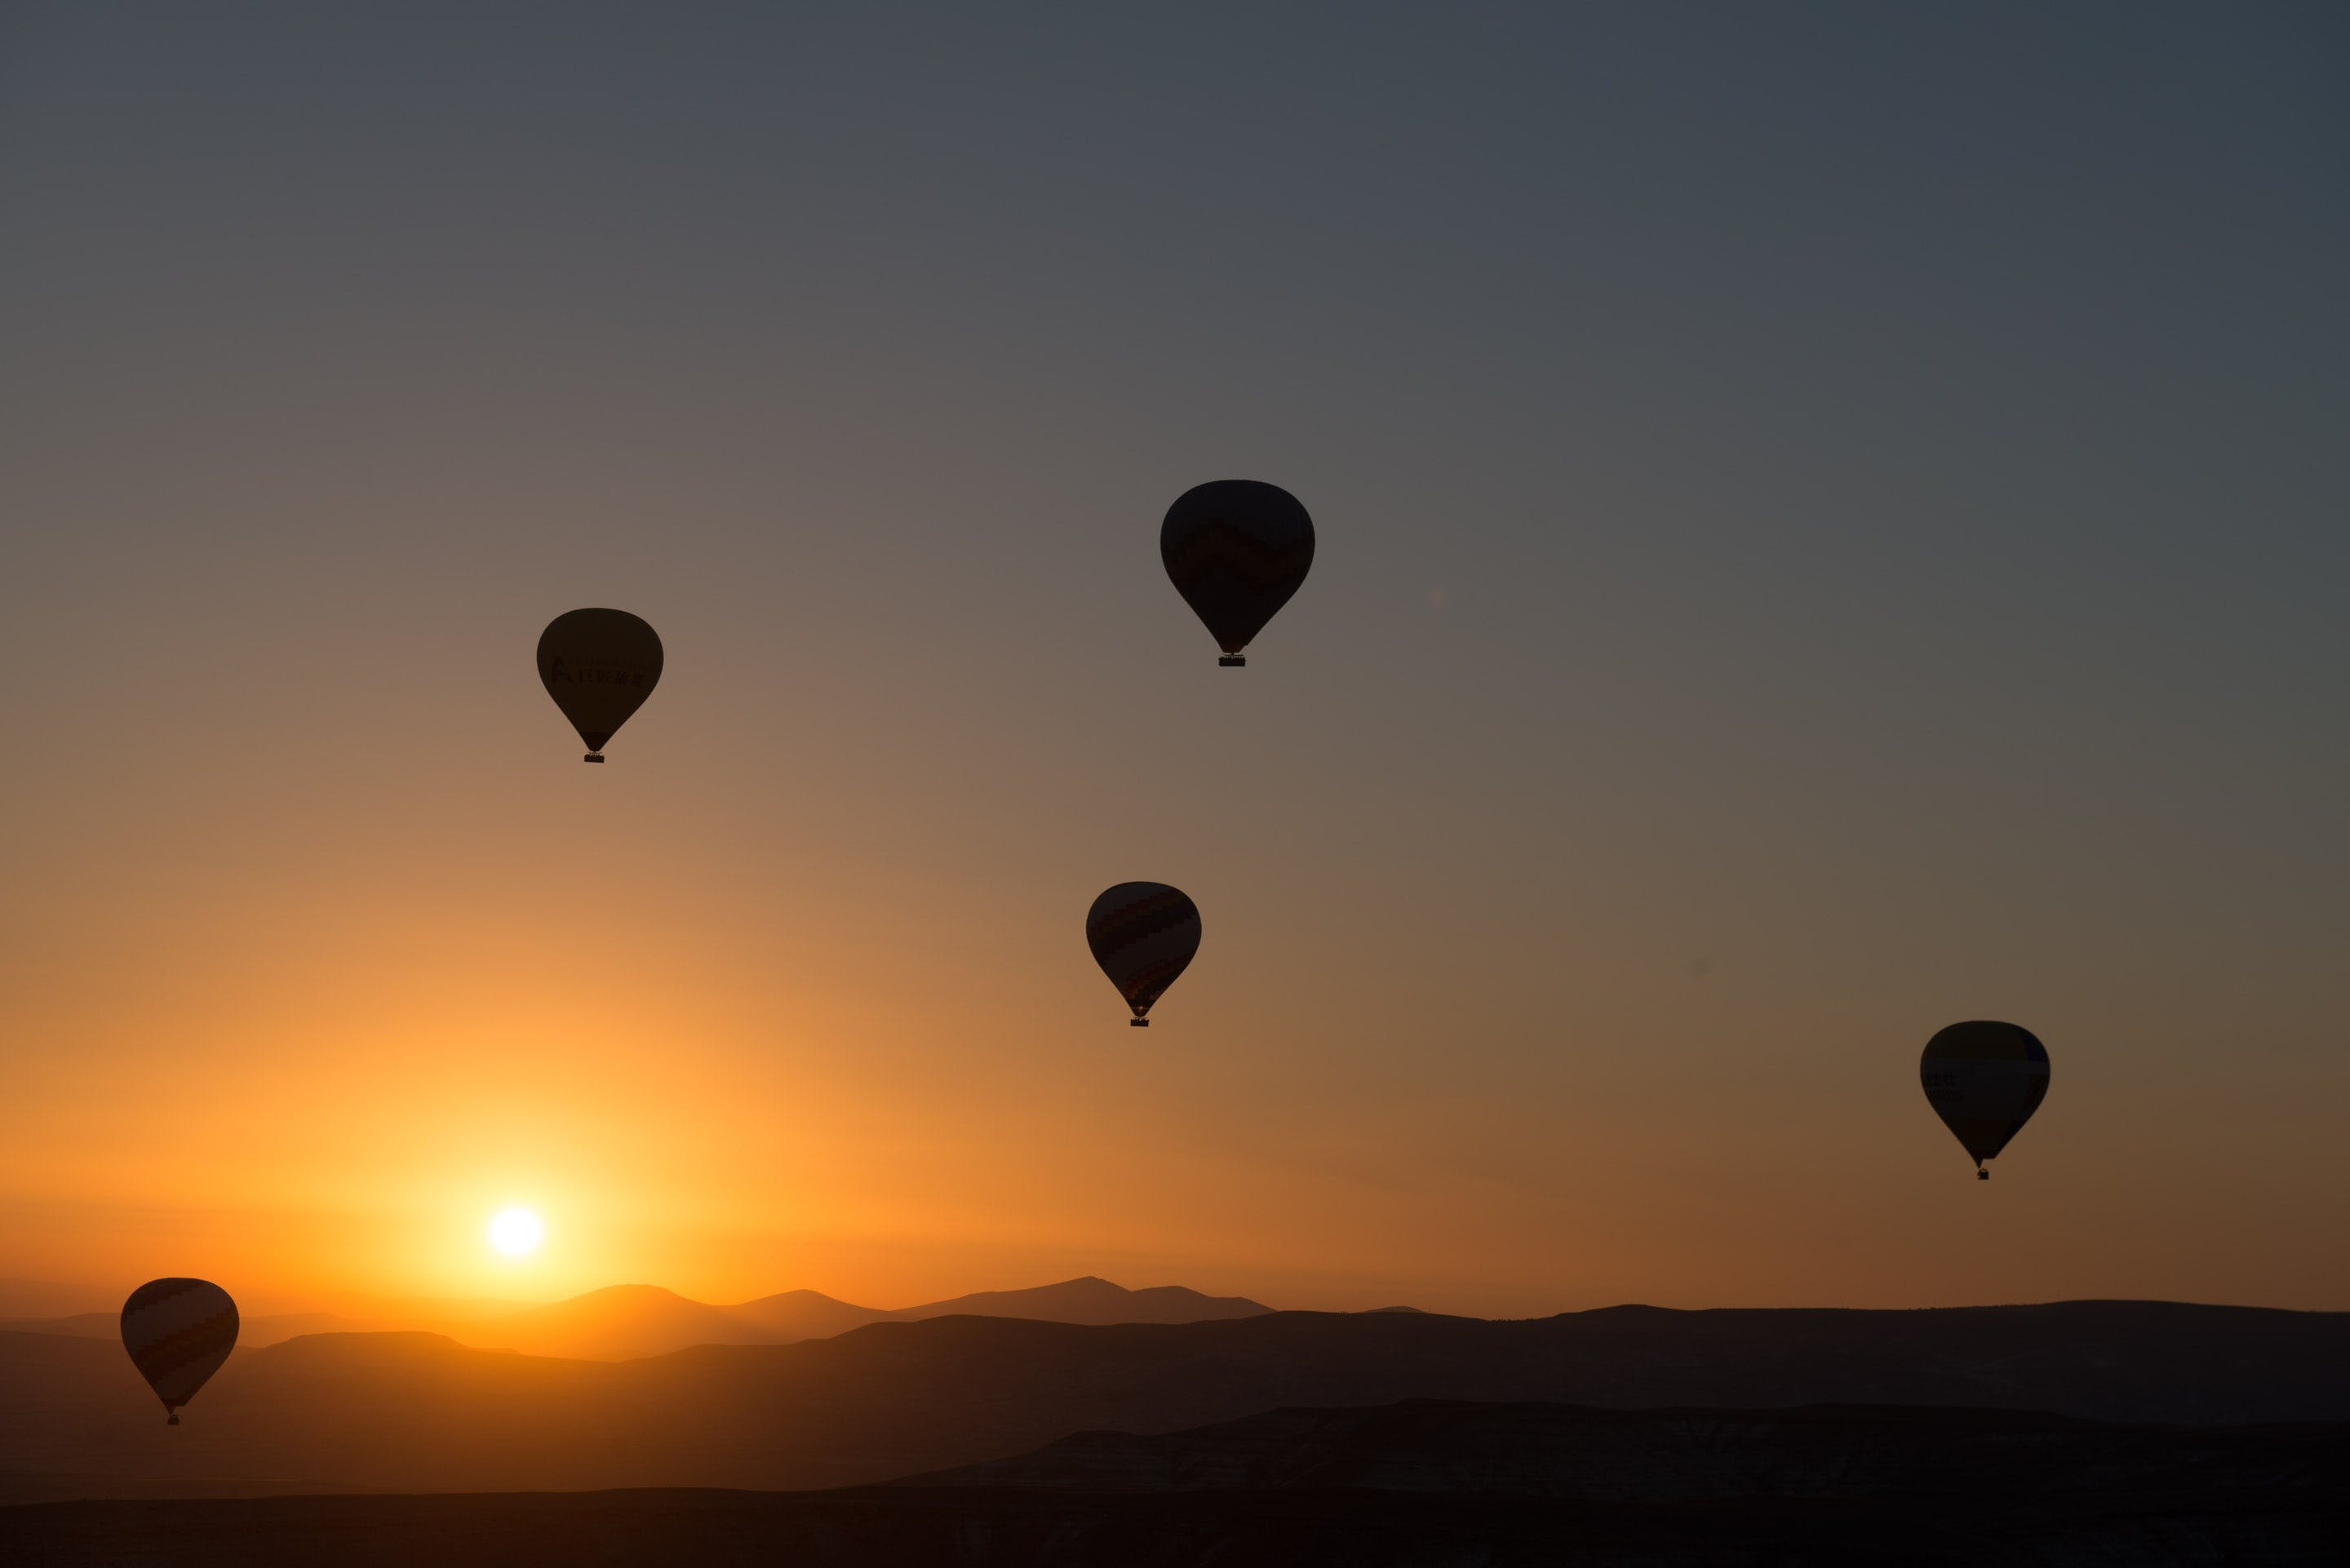 Hot Air Balloons Flying in the Air